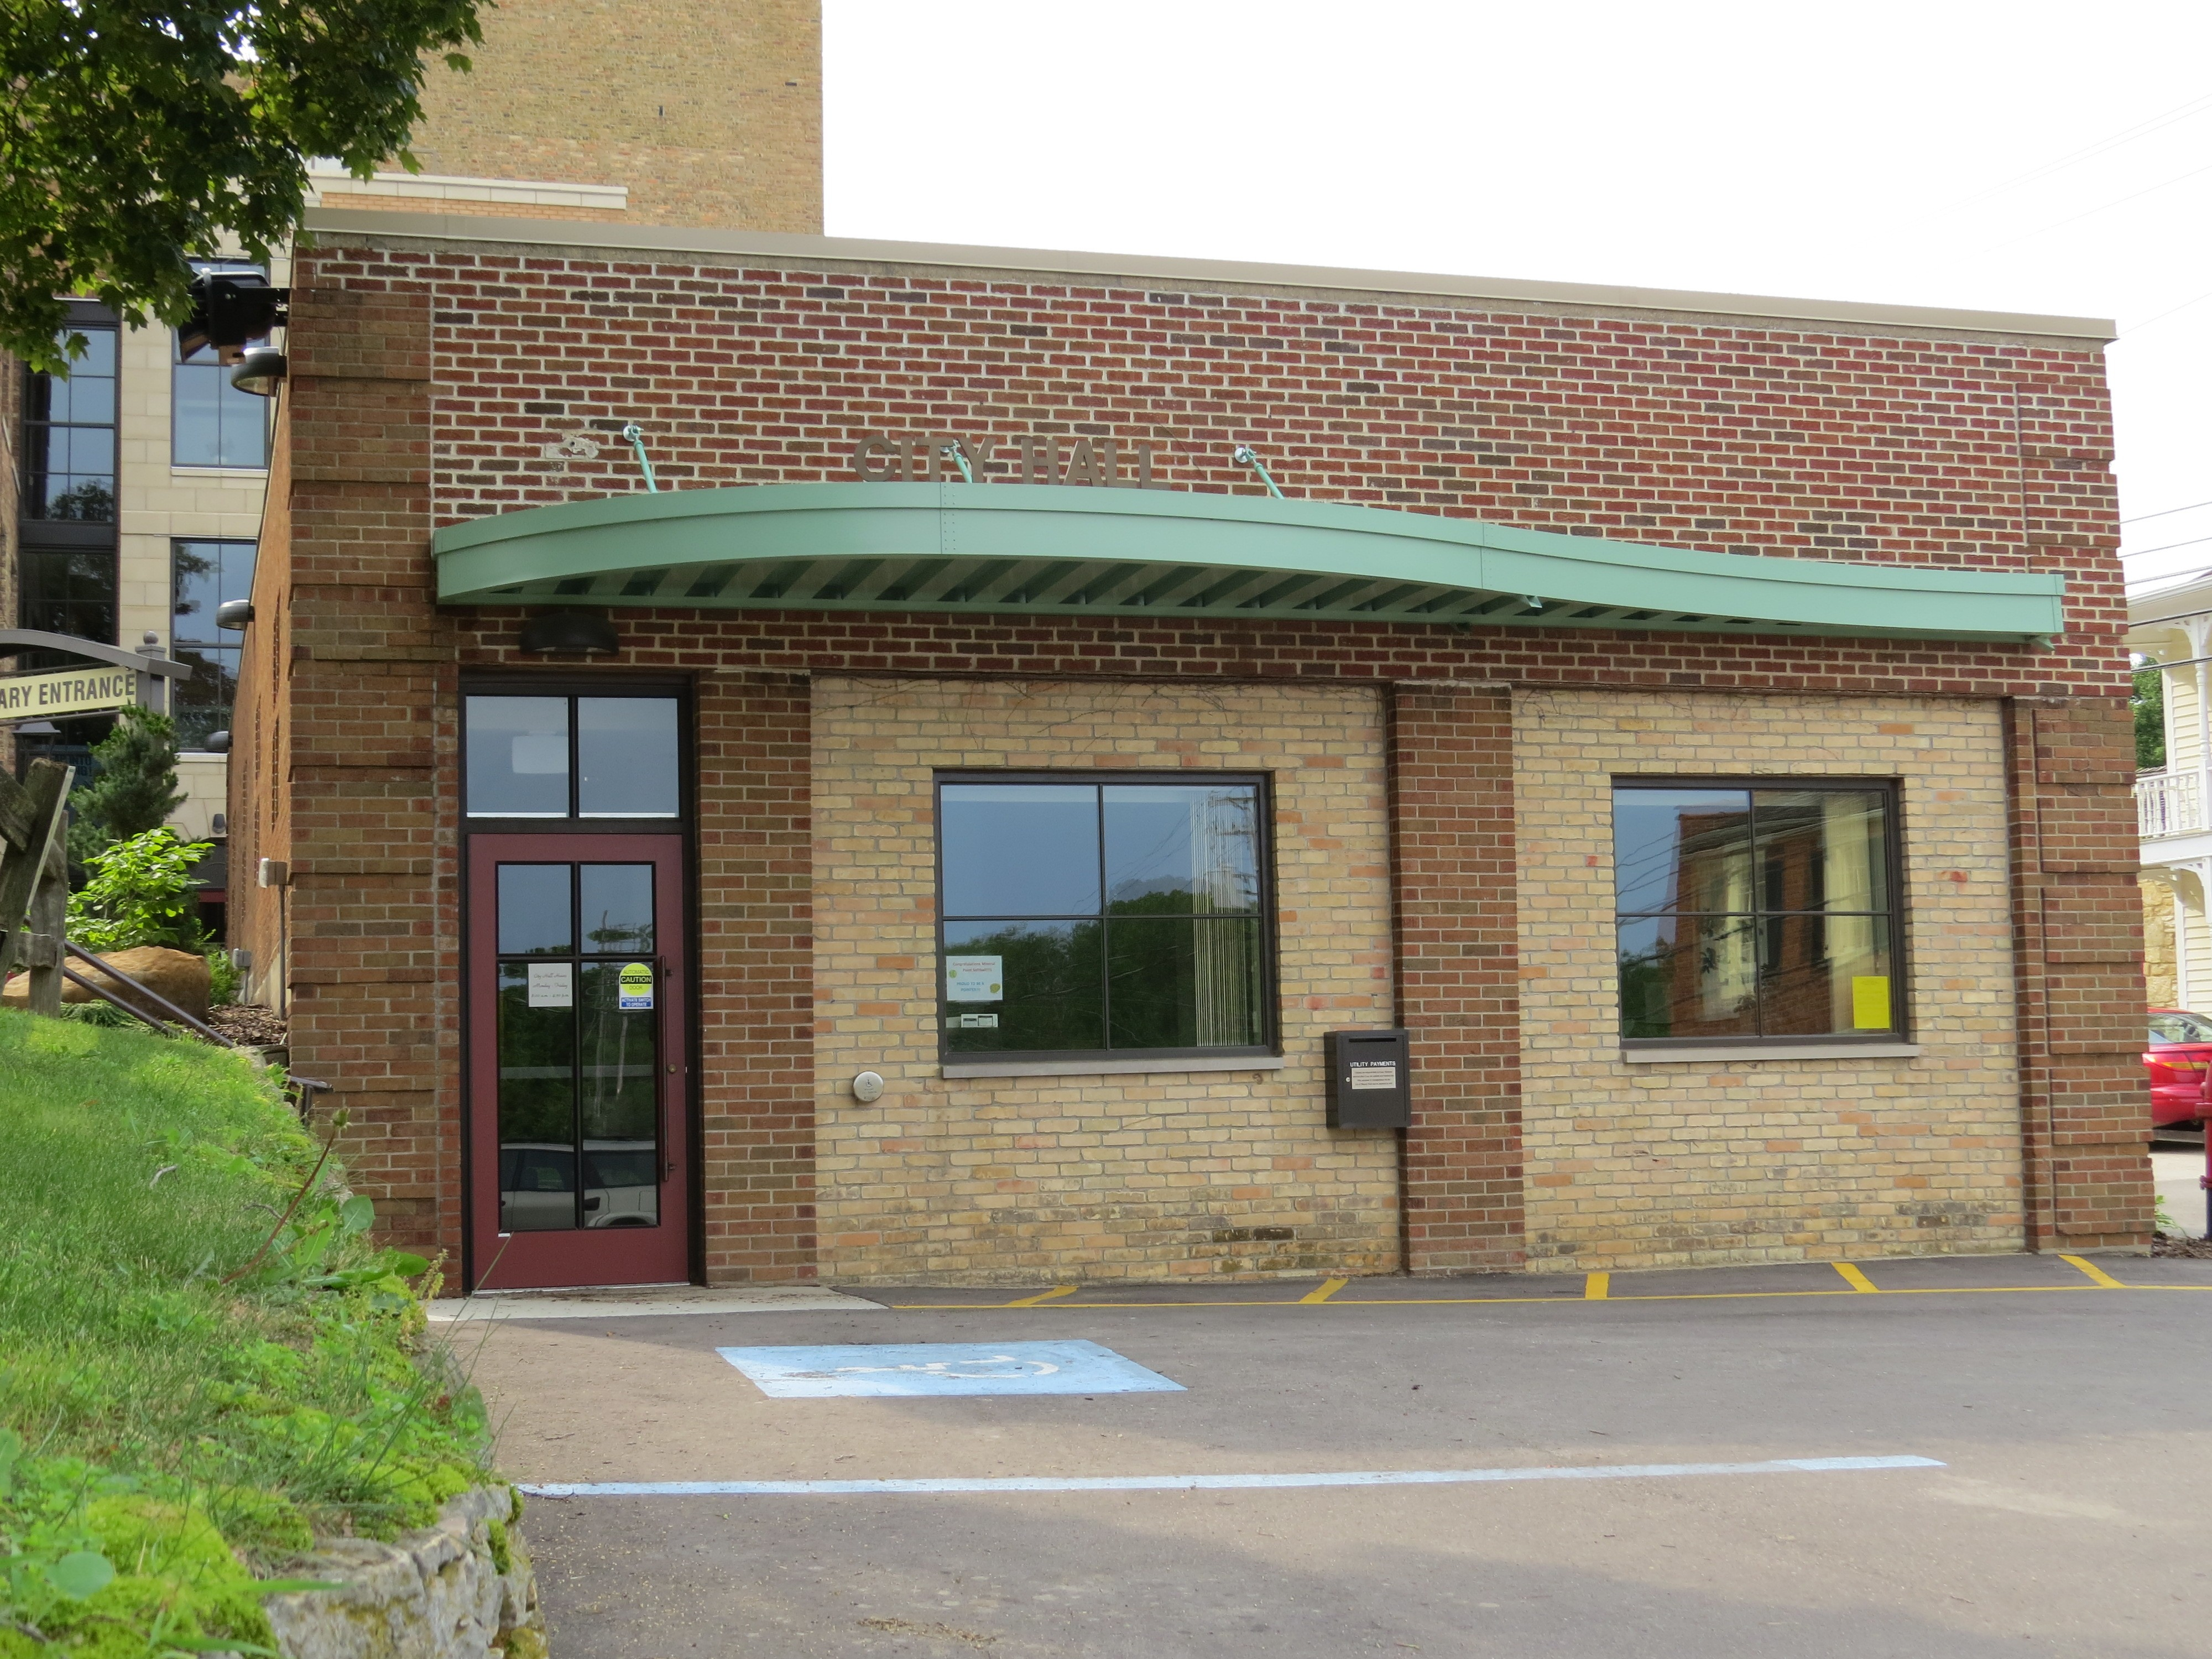 M-6071 - CITY HALL & LIBRARY - MINERAL POINT, WI - IMG_5245